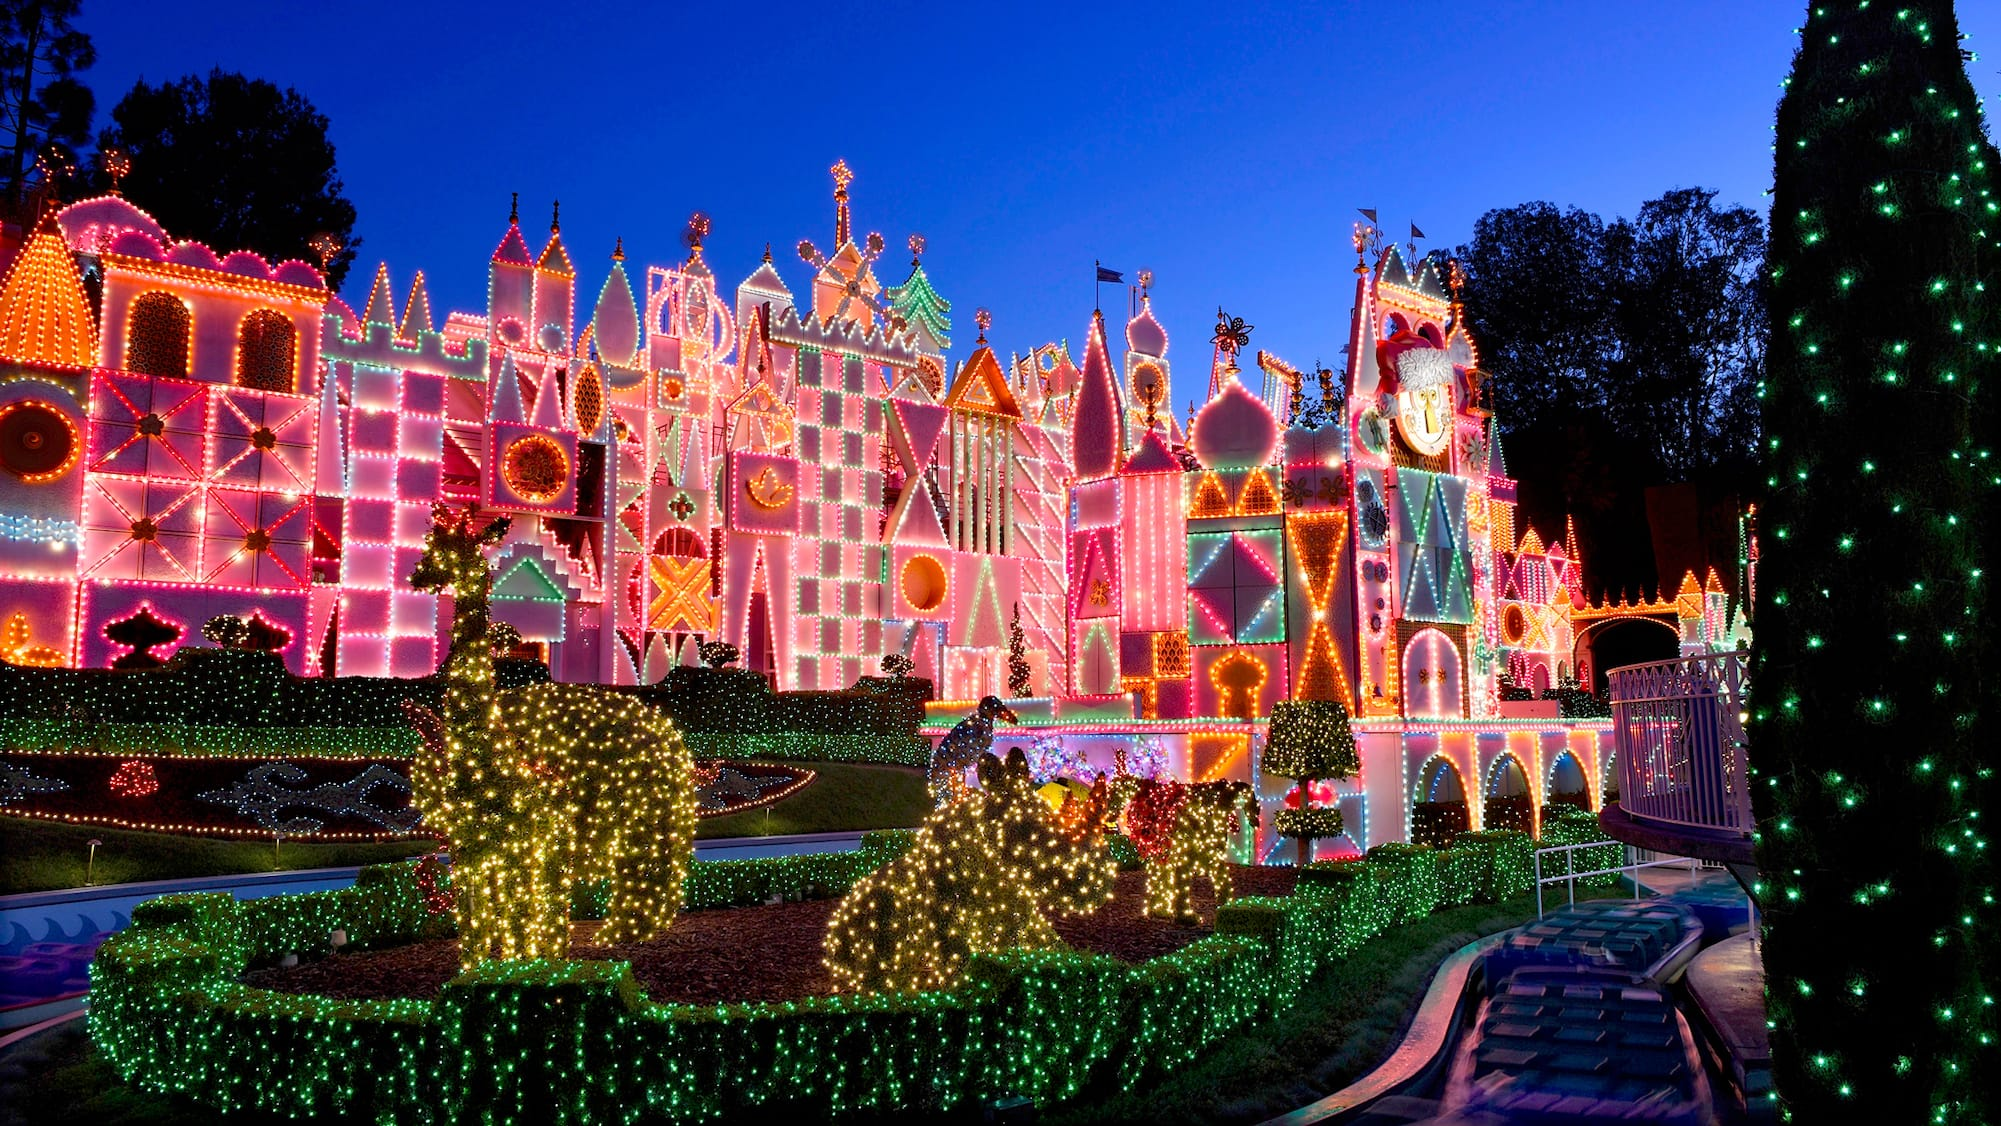 It S A Small World Holiday Lighting Decorations